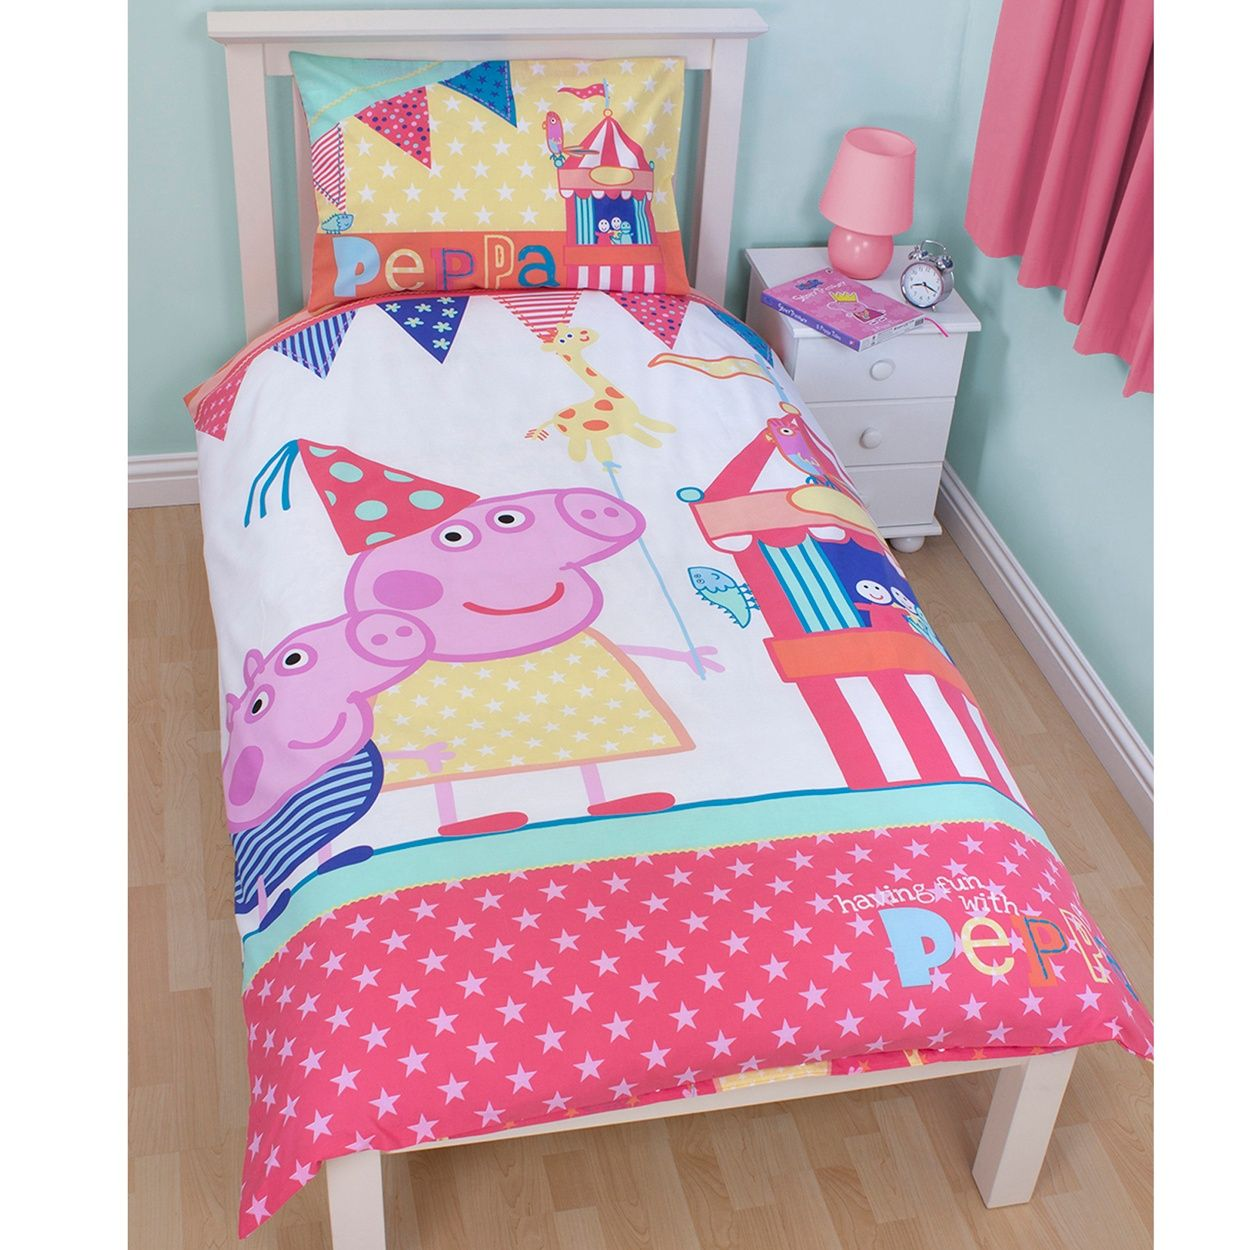 Disney Peppa Pig Bedding Set At Debenhams Com Single Duvet